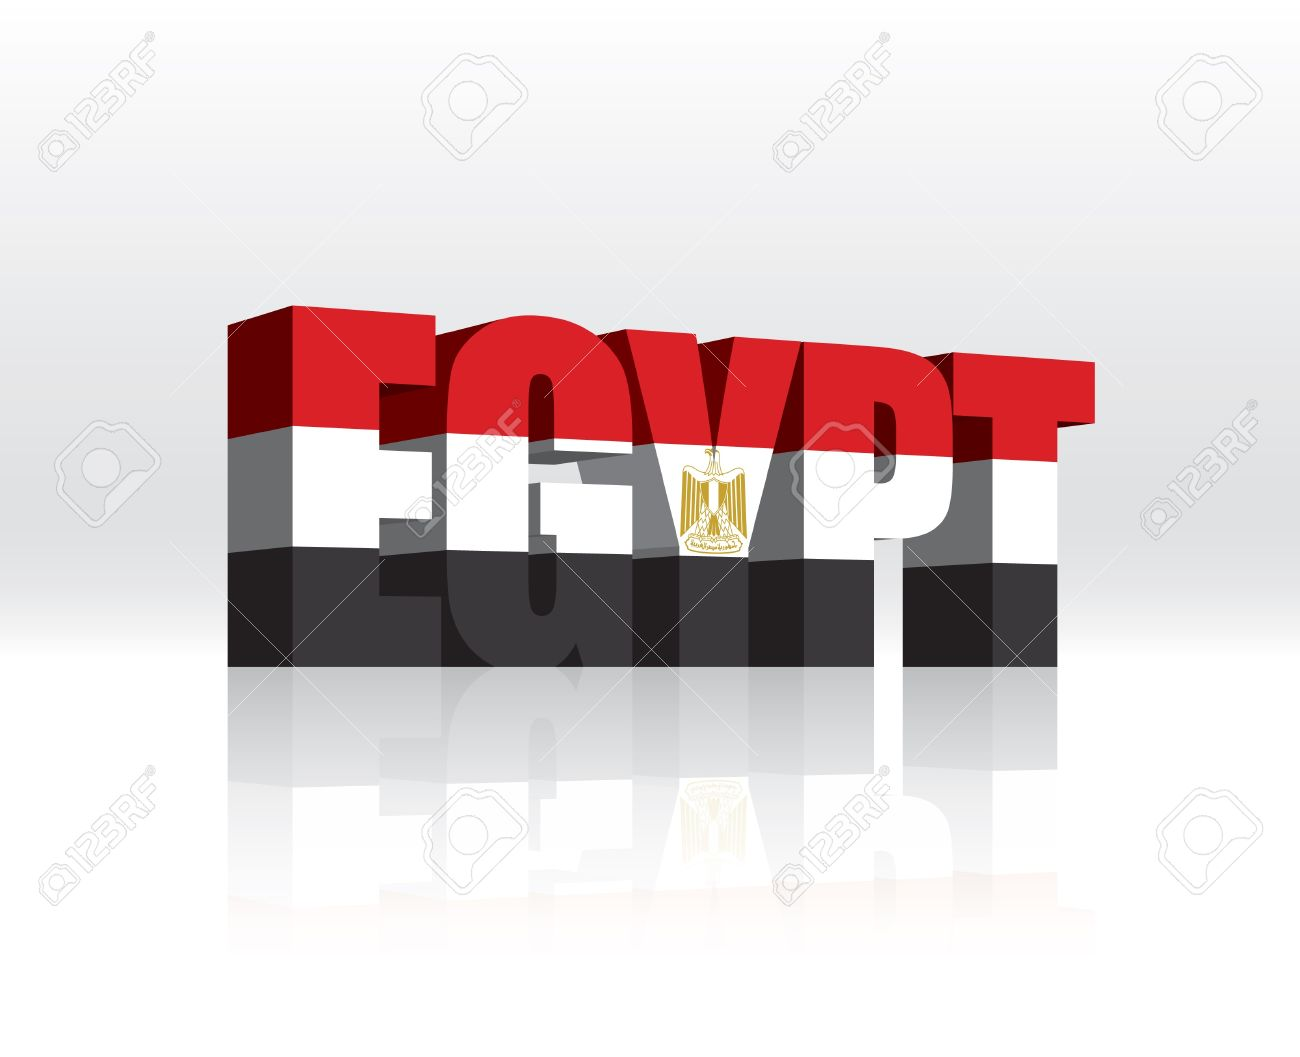 3d egypt word text flag royalty free cliparts vectors and stock